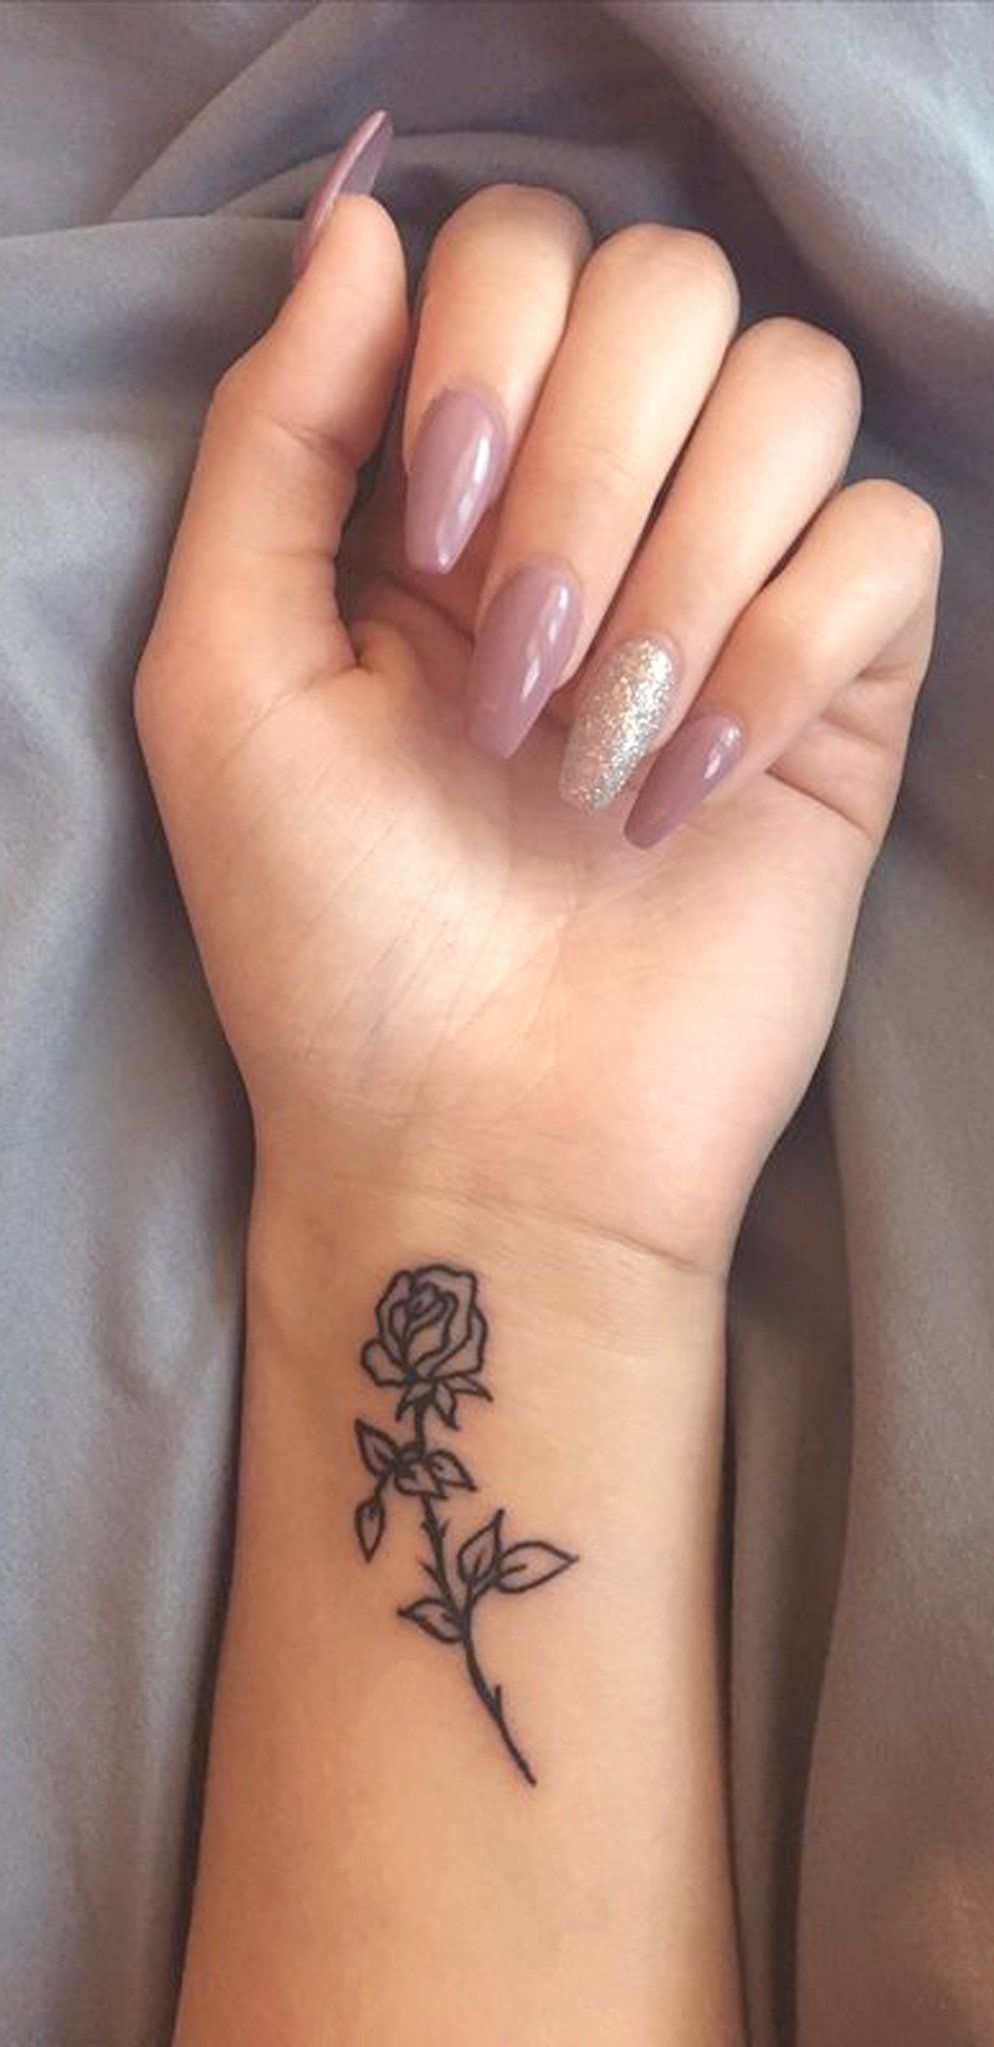 Female Small Tattoos Designs For Arms Arm Tattoo Sites